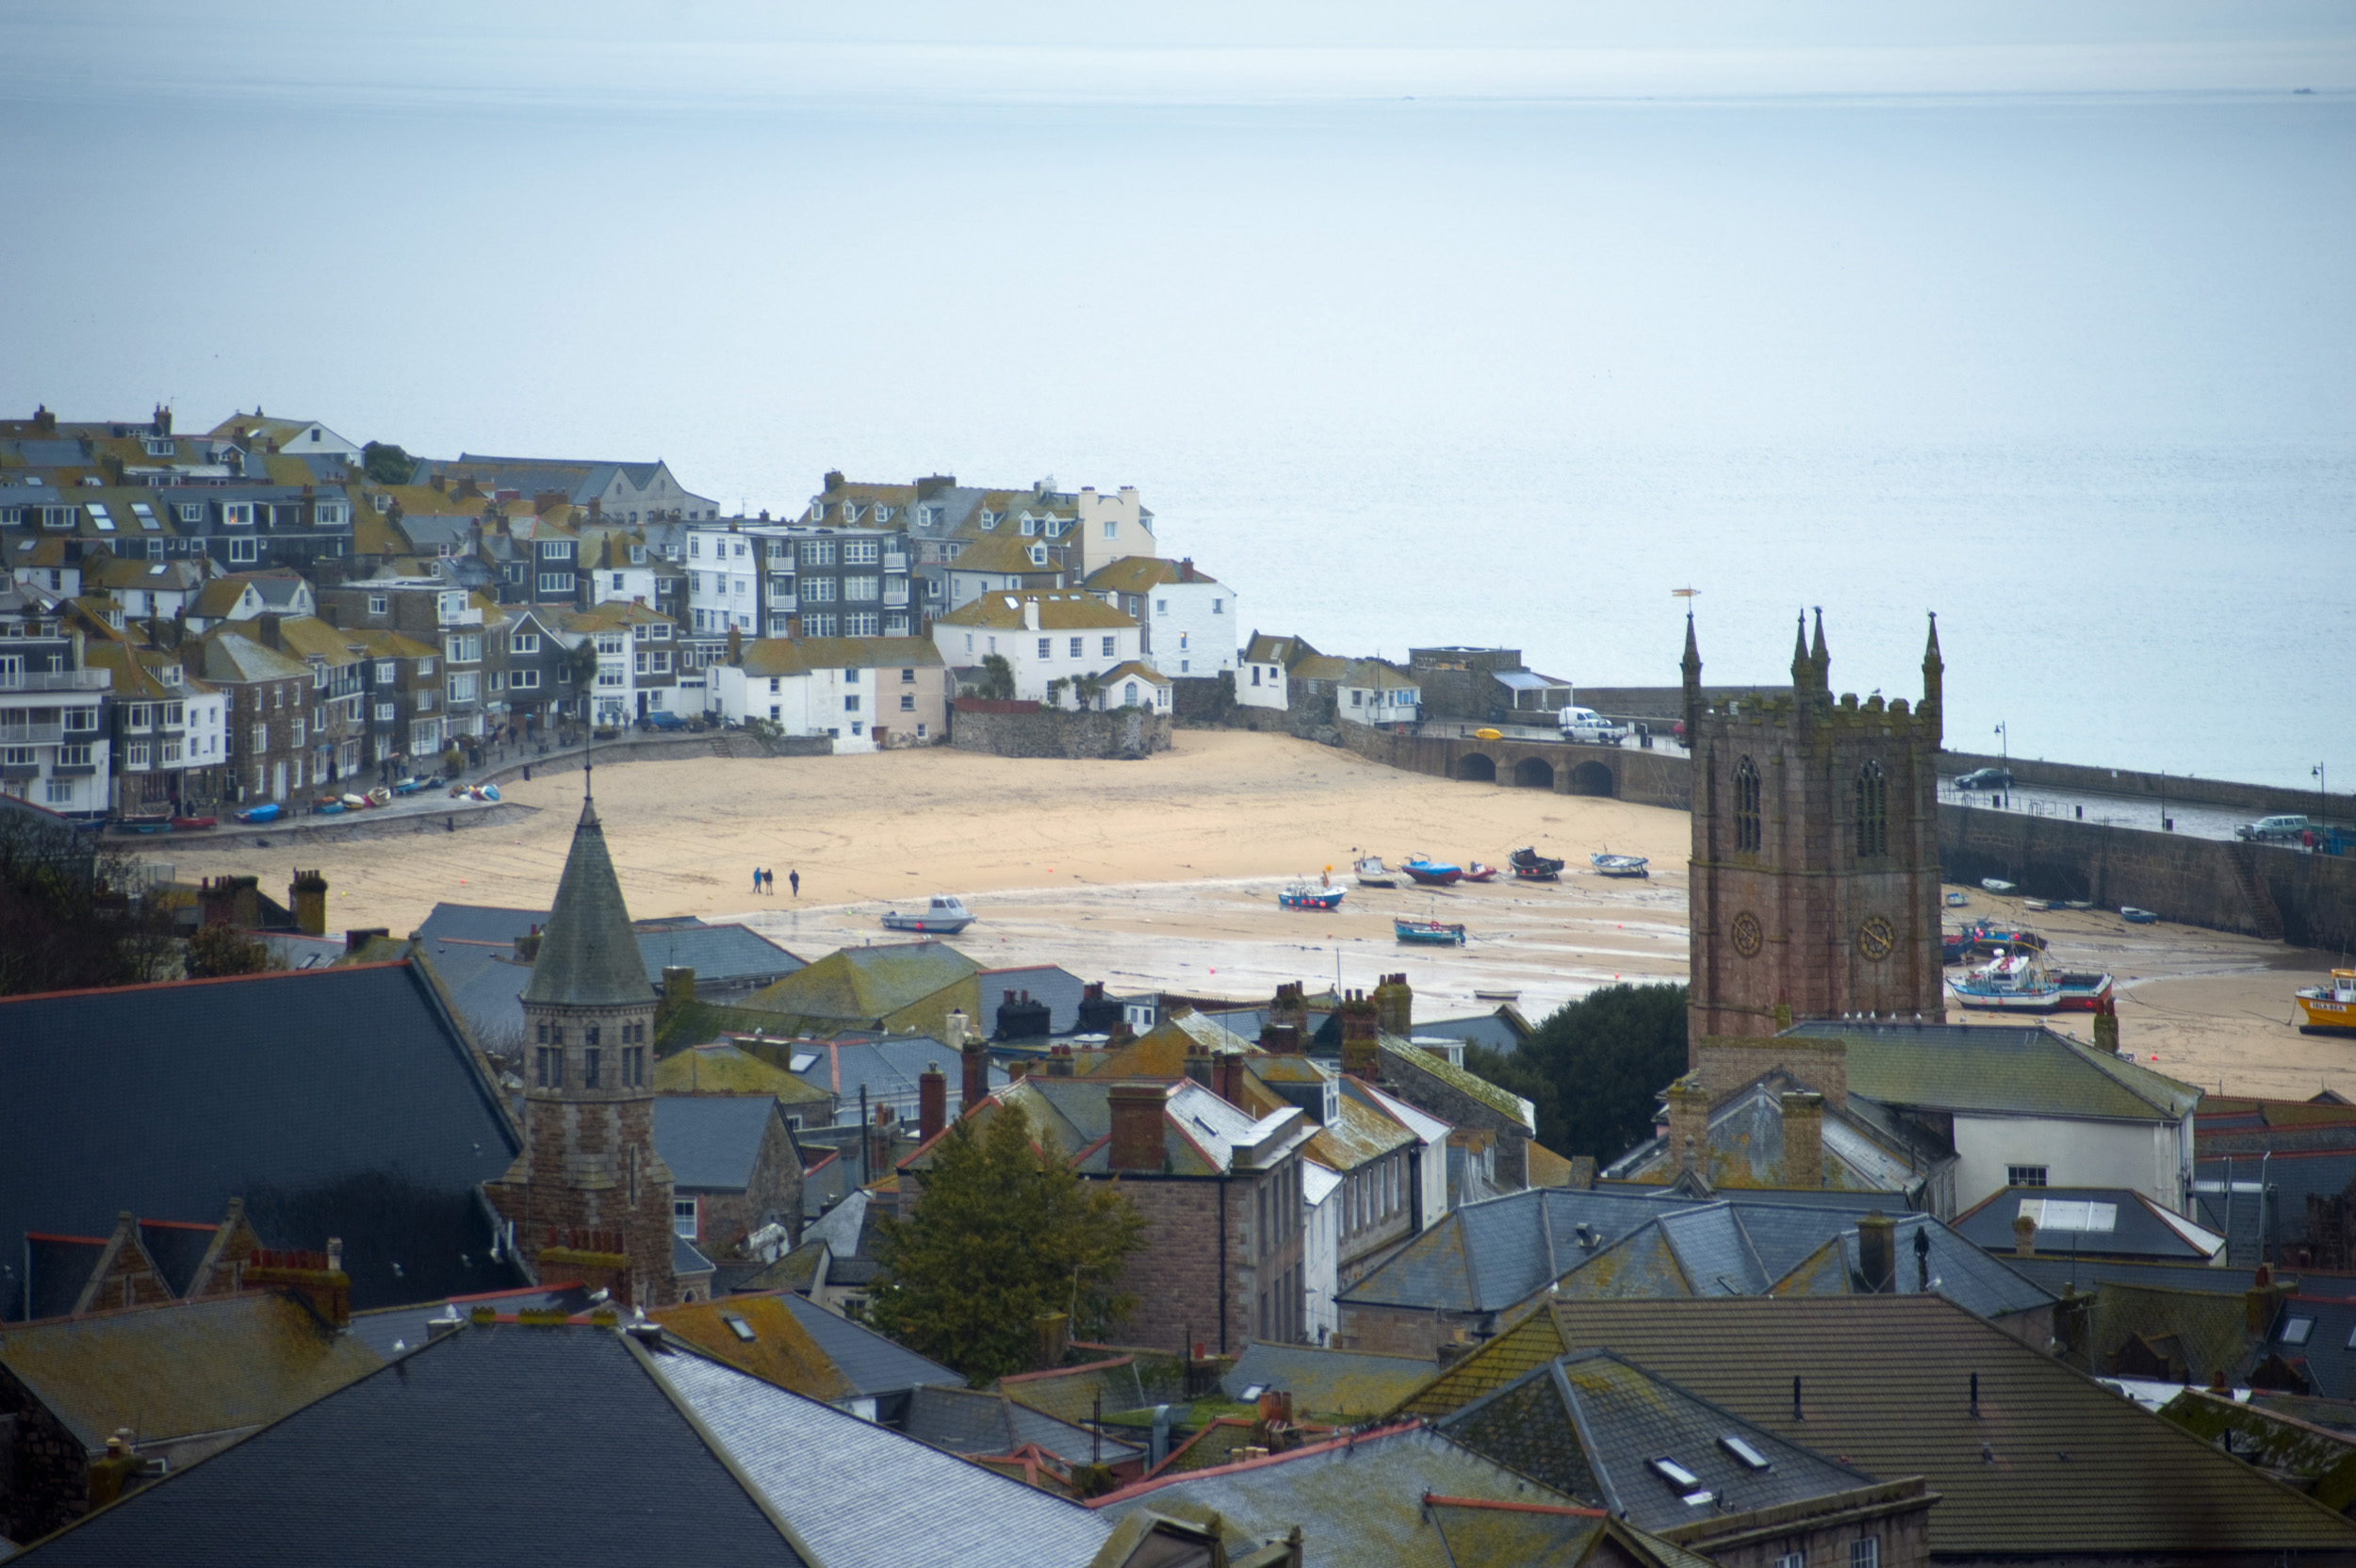 a telephoto view looking down over the rooftops of st ives, cornwall